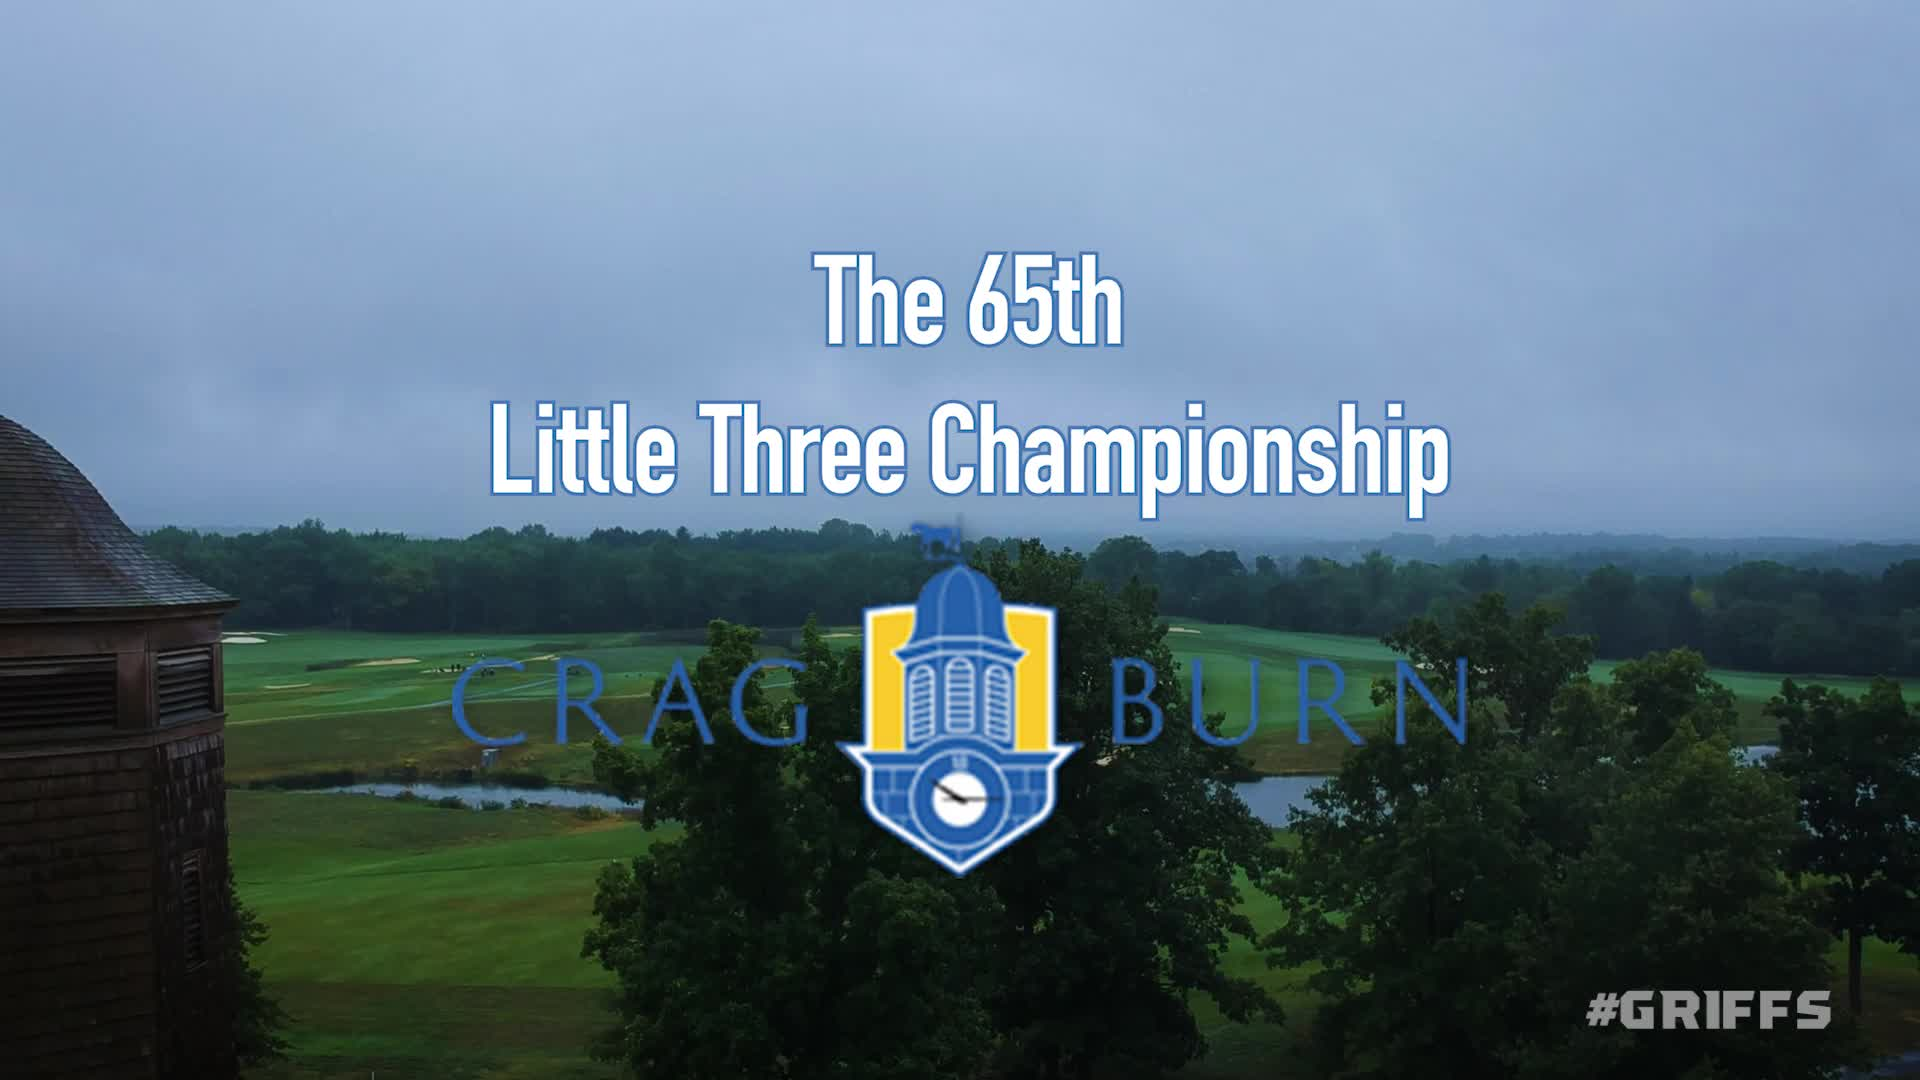 The 65th Little Three Championship - Sights and Sounds